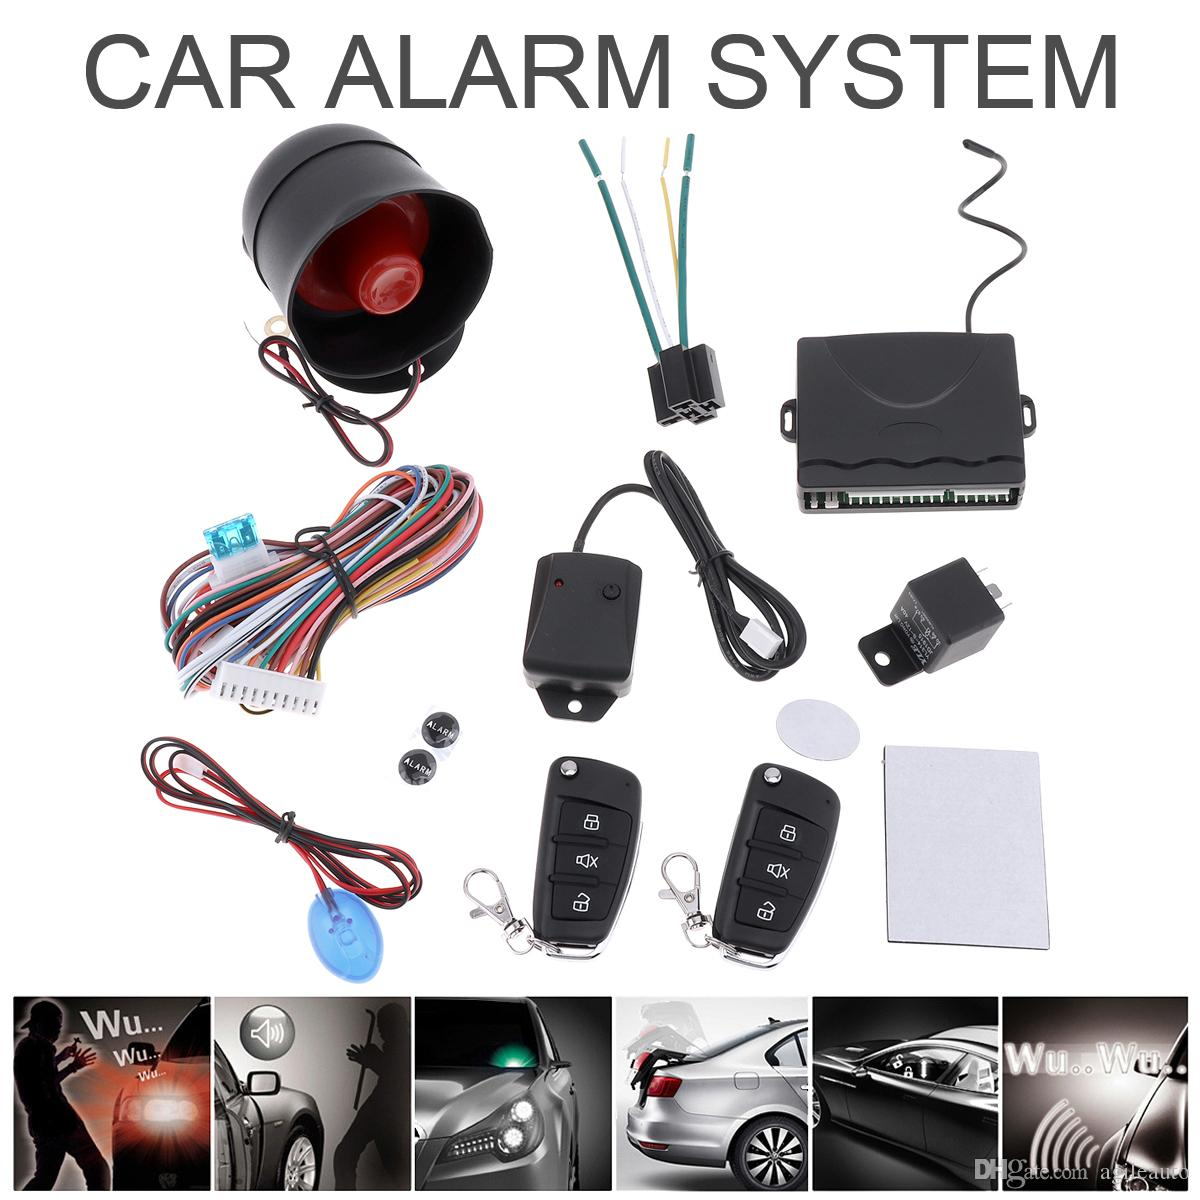 Auto Transponder Chip Key or Alarm System Key-less Entry?